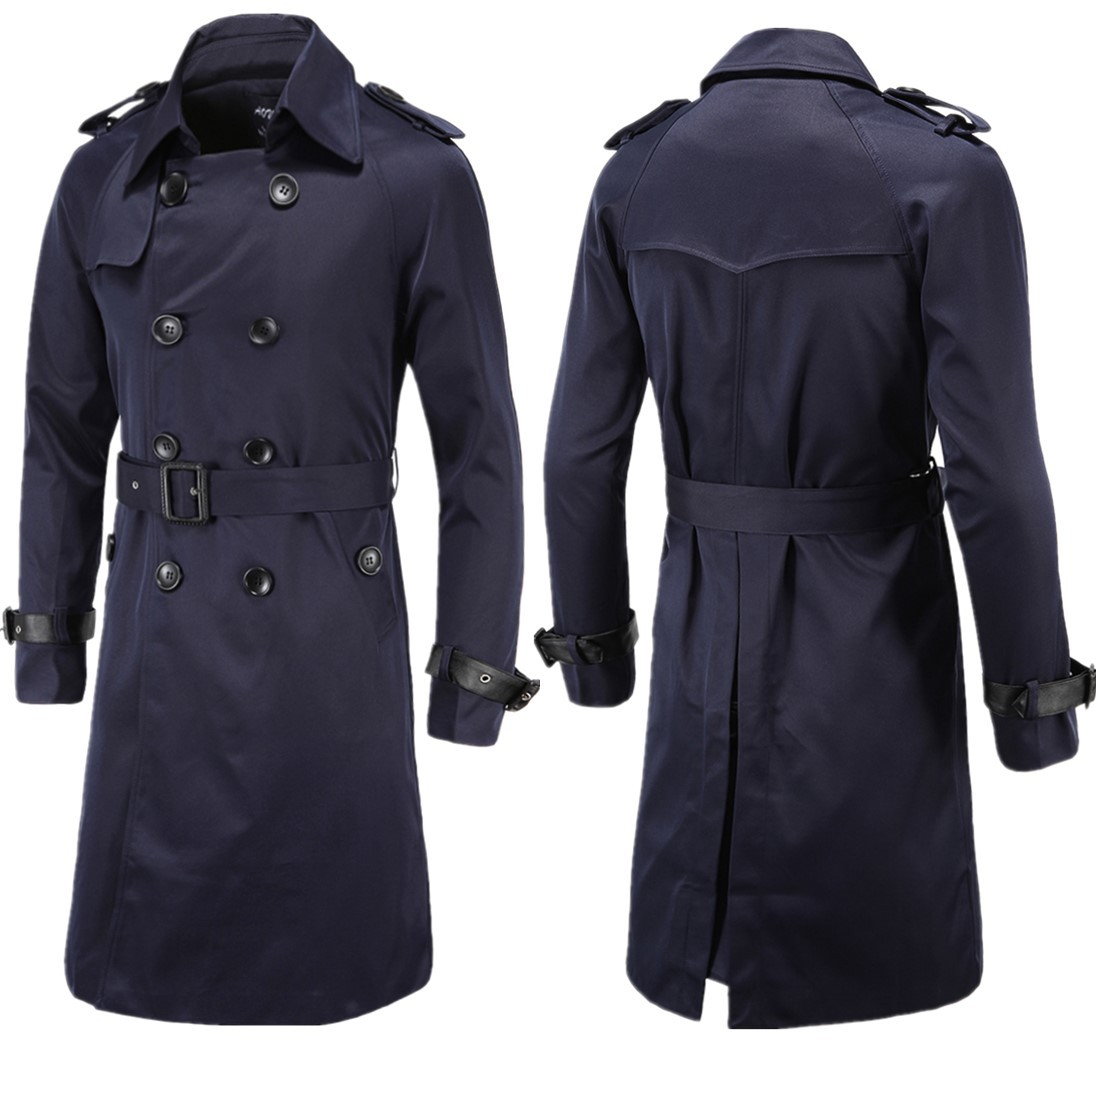 Aowofs Fashion Men'S Wear  Spring Clothing Boutique Europe And America Long Slim Fit Double Breasted Trench Coat MEN'S Outer